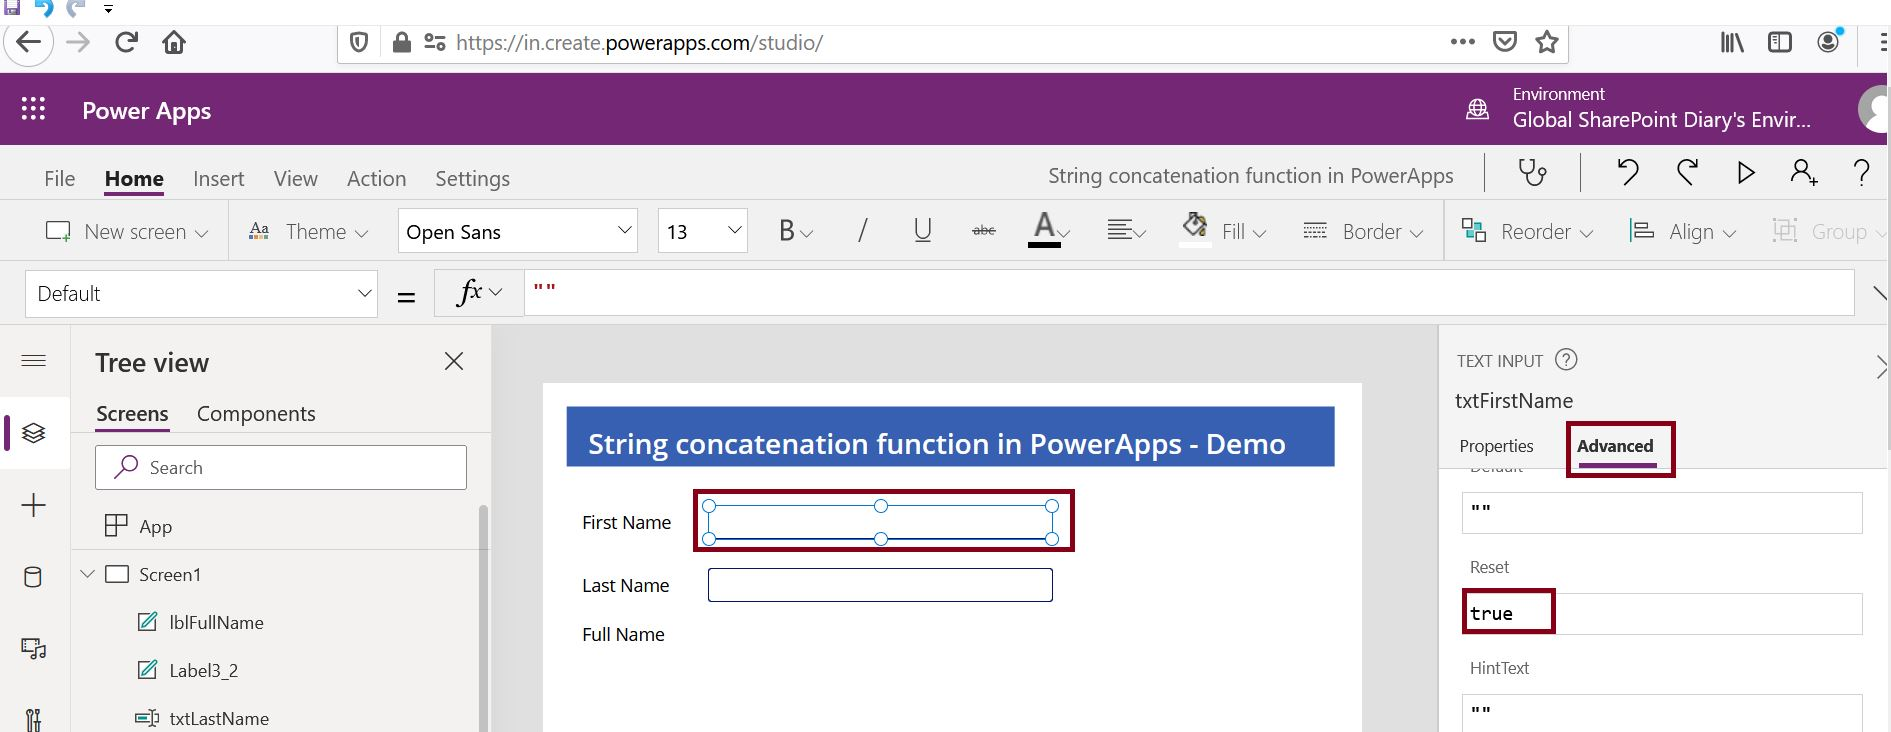 How to reset the control in PowerApps?